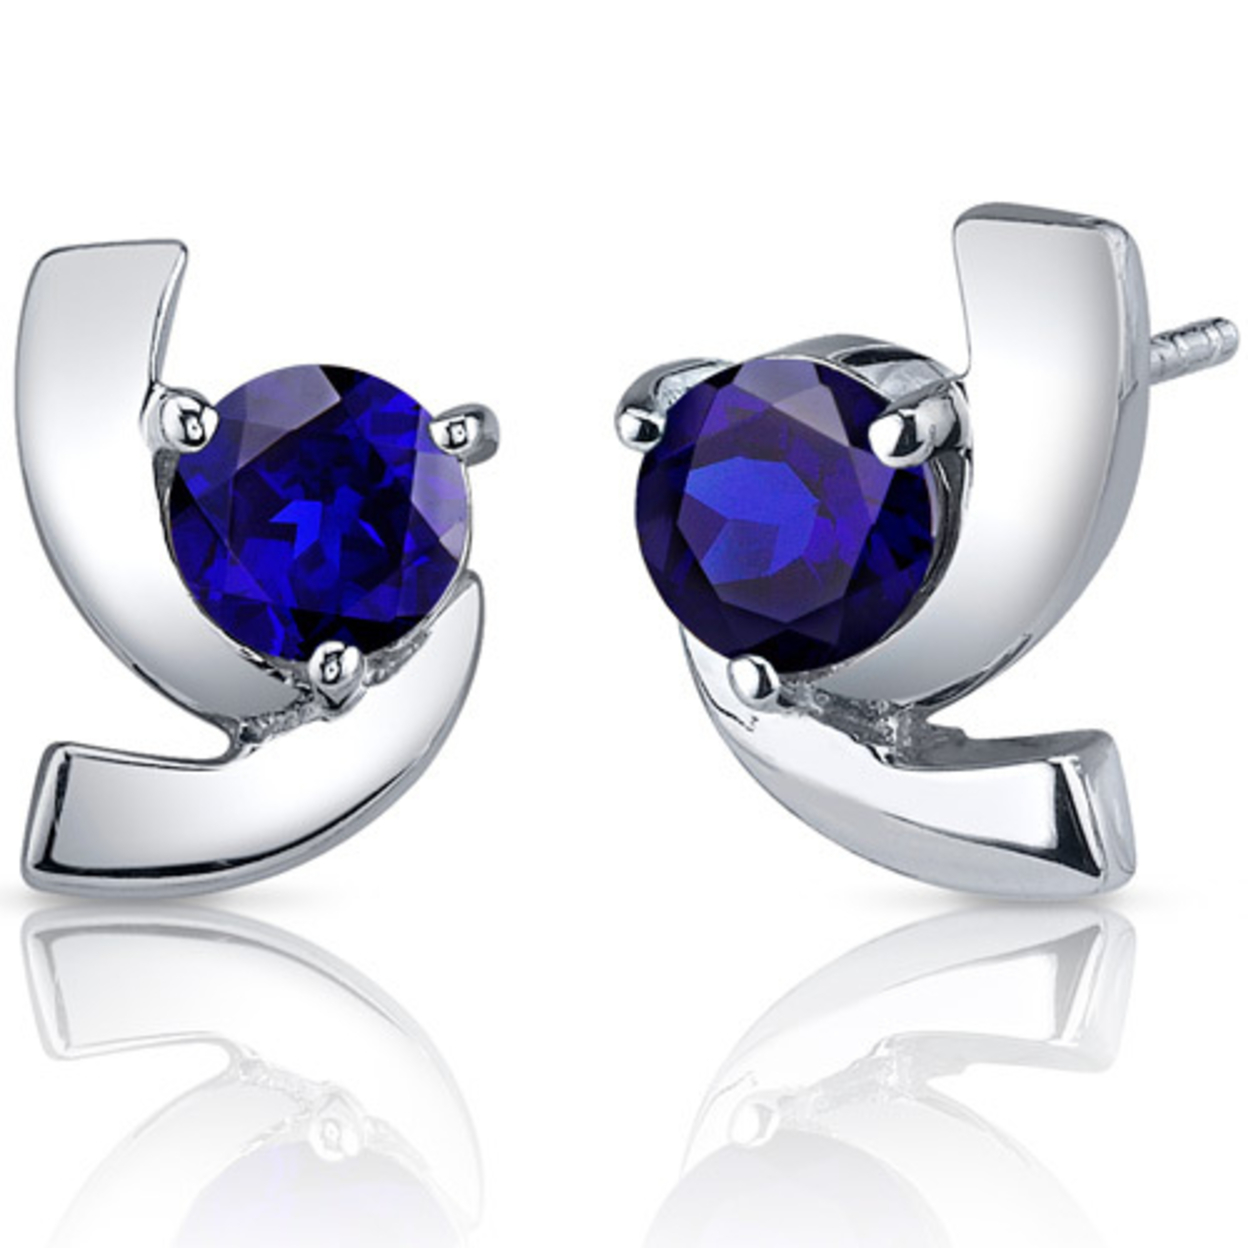 Illuminating 2.50 Carats Blue Sapphire Round Cut Earrings In Sterling Silver Style Se7594